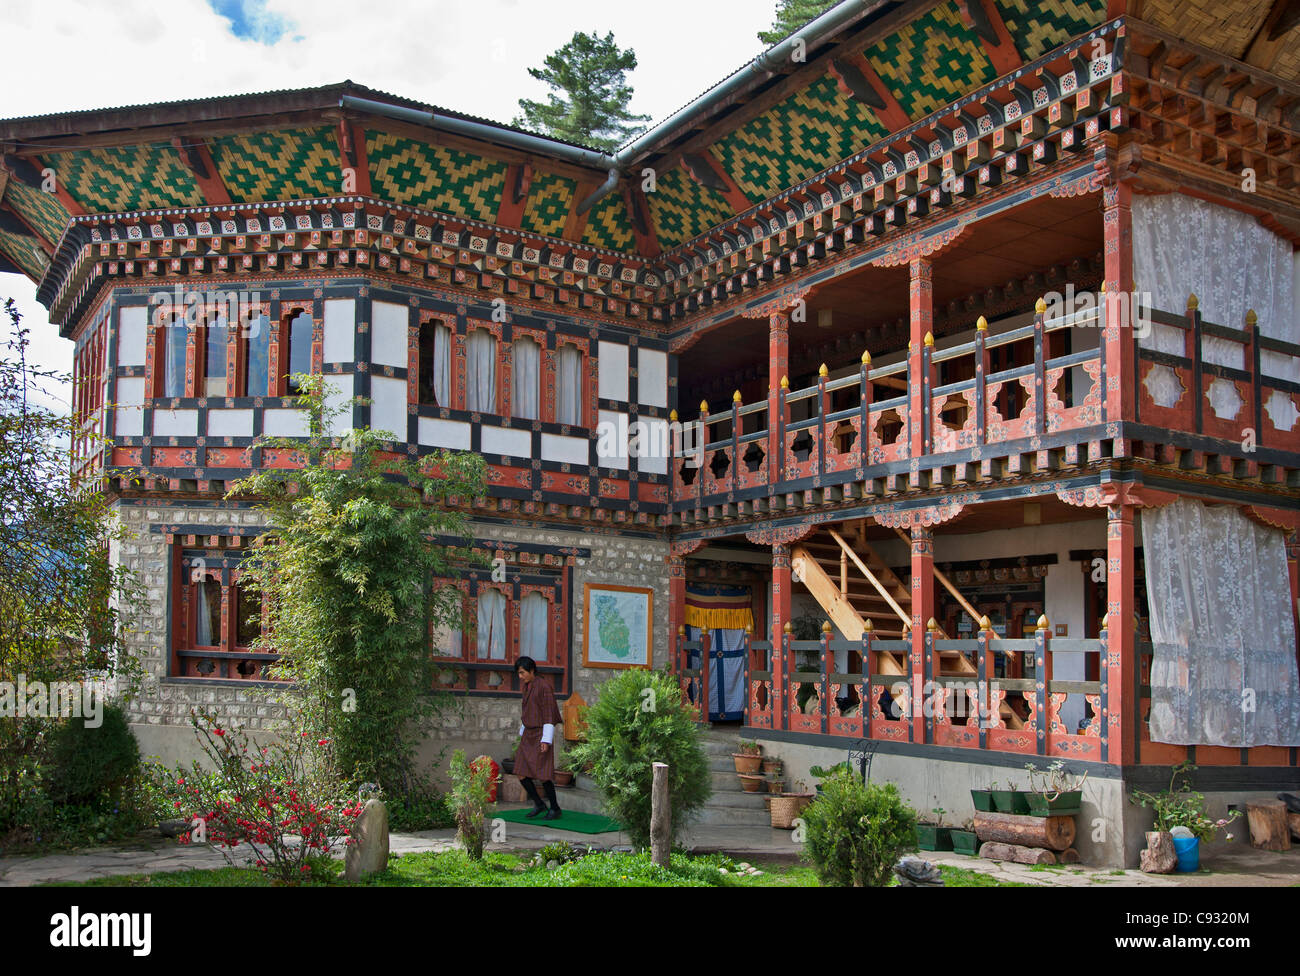 The typical Bhutanese architectural style of Mountain Lodge, a pleasant tourist hotel on the outskirts of Jakar. - Stock Image